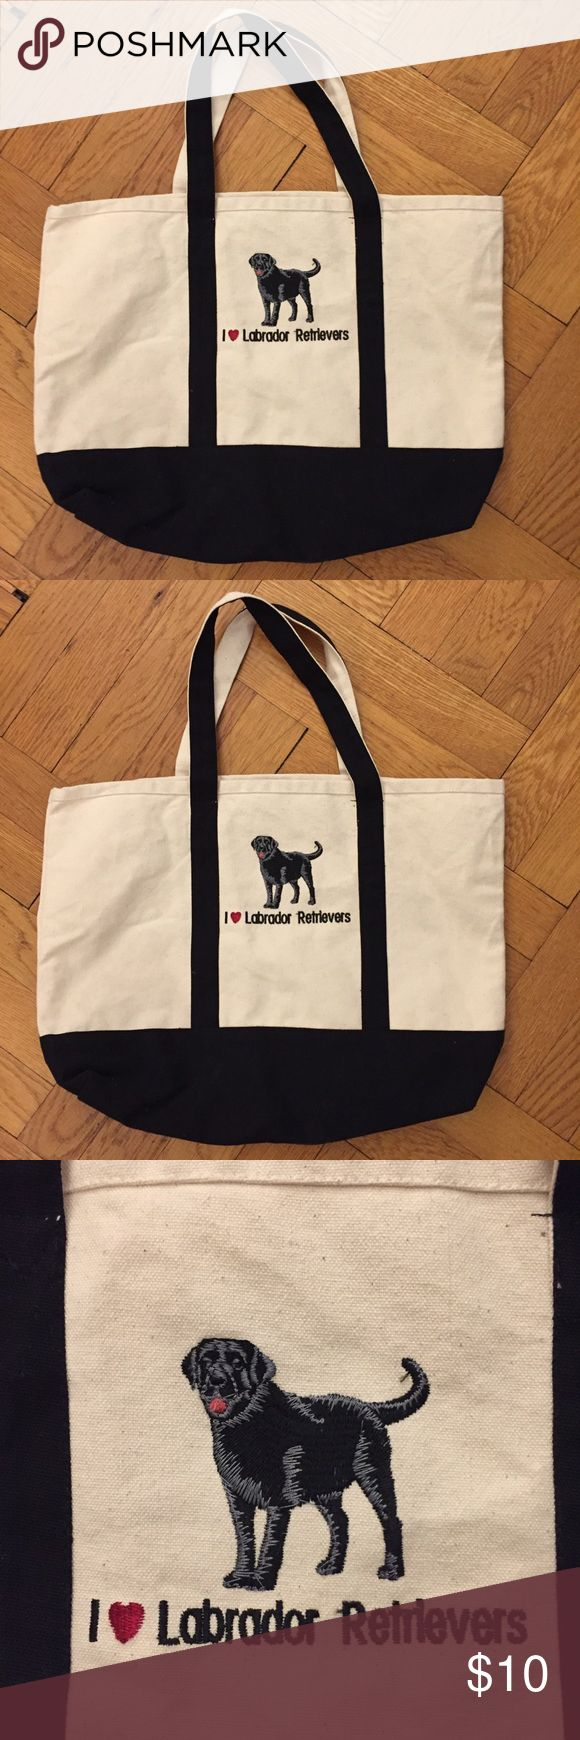 "I love Labrador Retrievers dog black canvas tote Excellent condition! Appears never used.  12"" x 16.5"" x 7"" Bags Totes"